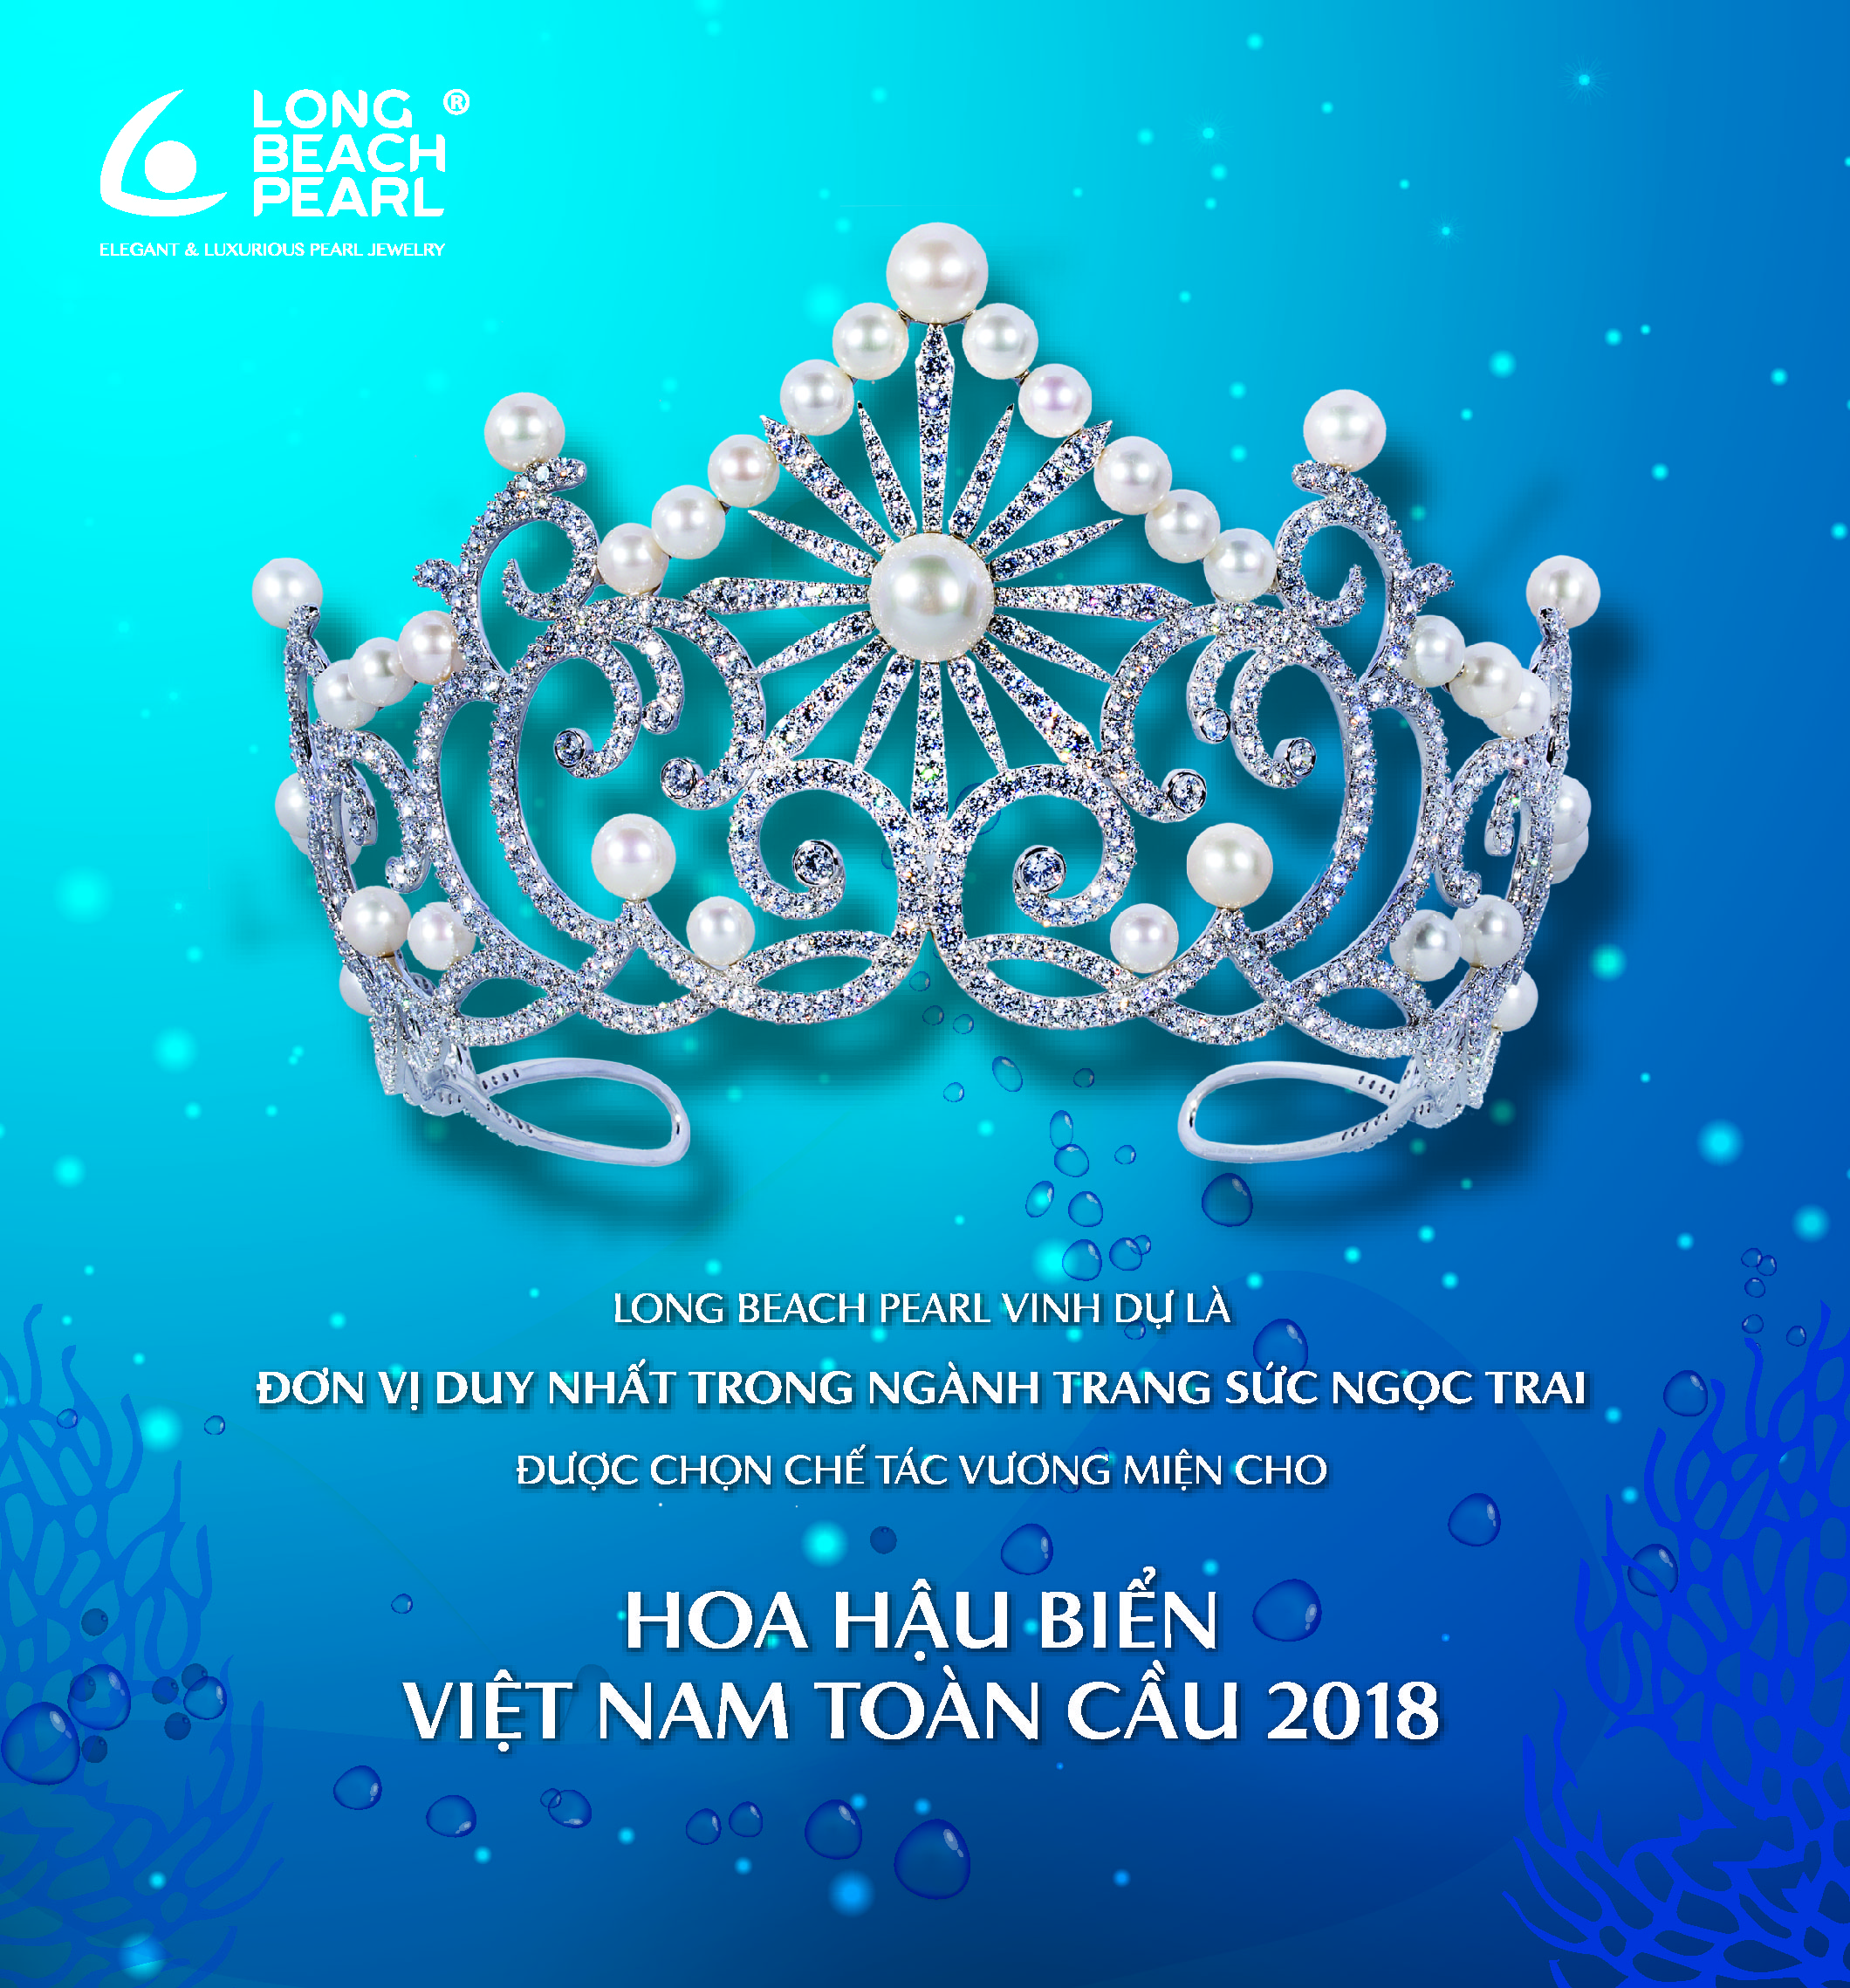 view-post-fb-hhvn-toan-cau-2018-01-01